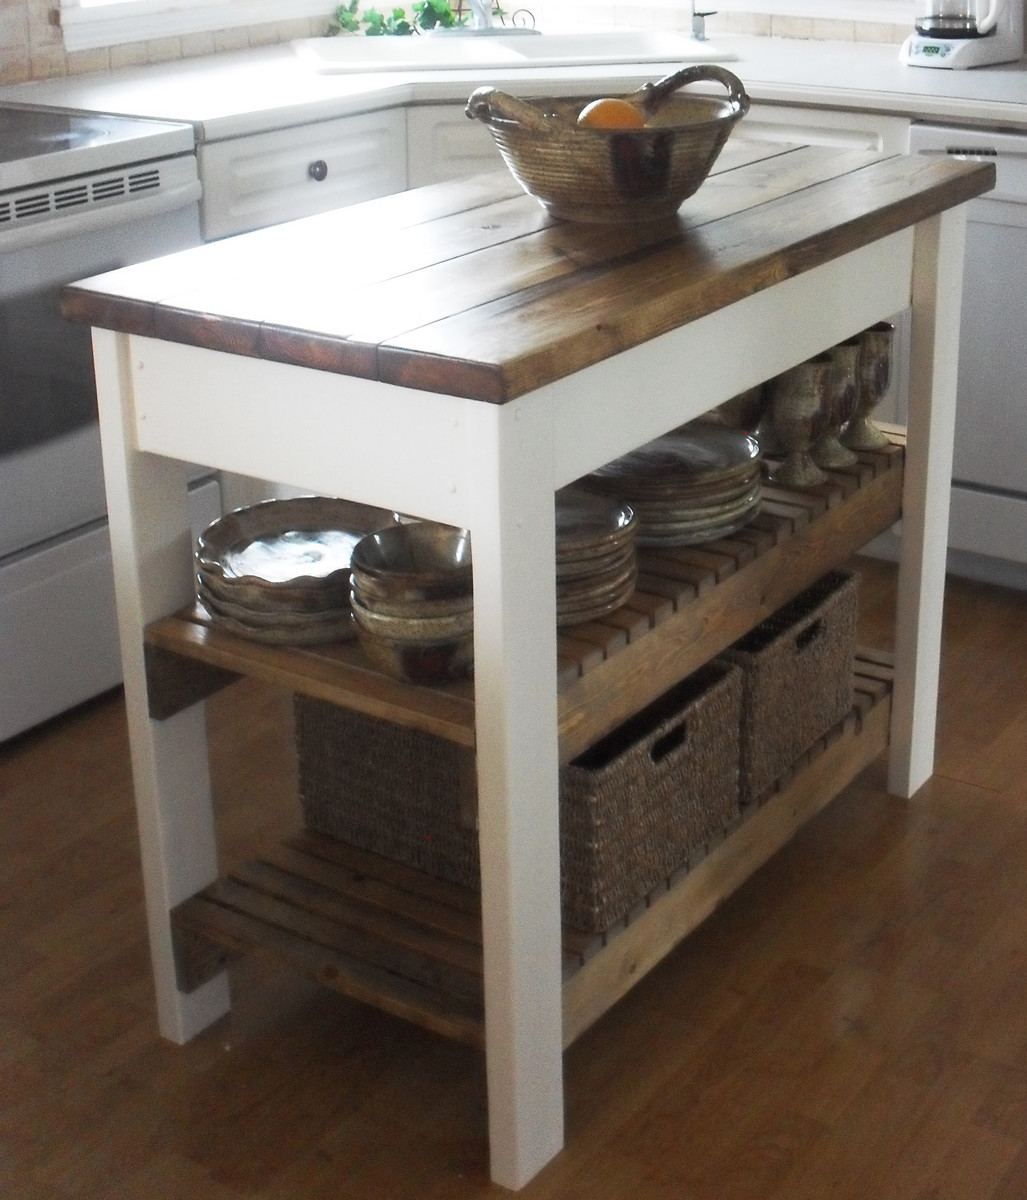 Uncategorized Diy Kitchen Island ana white kitchen island diy projects island